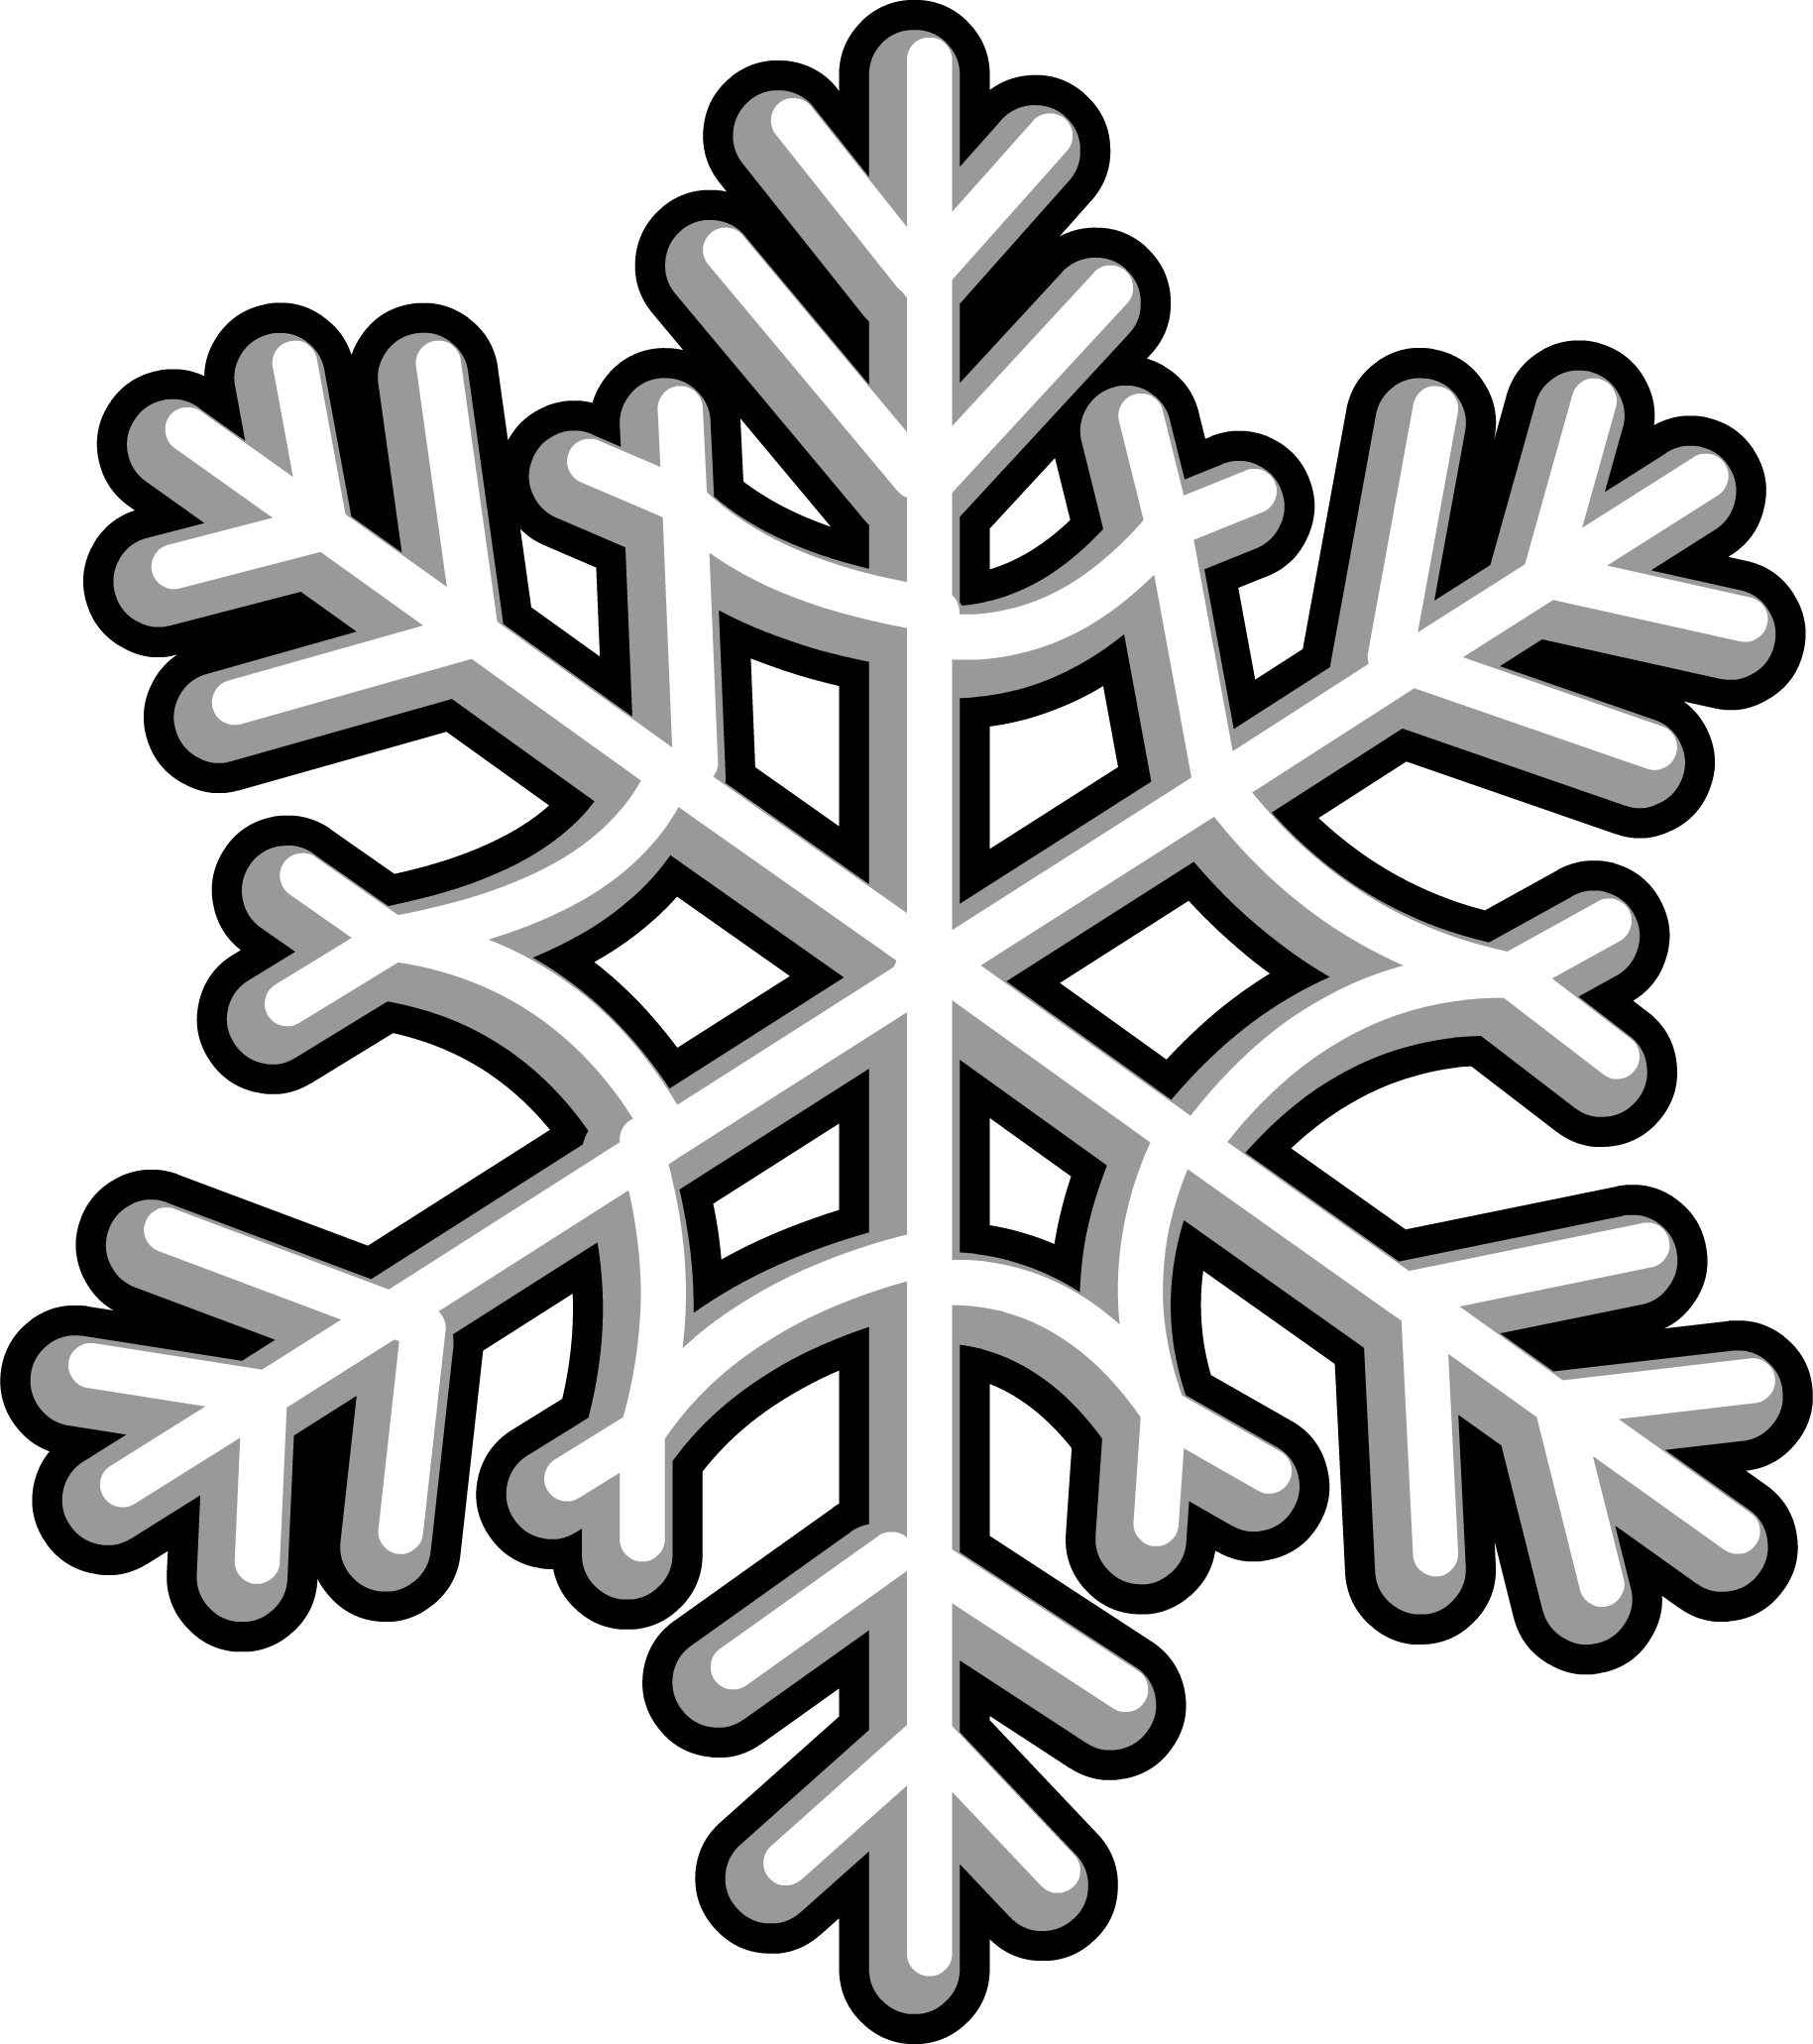 Image furniture png club. Snowflake clipart drawing